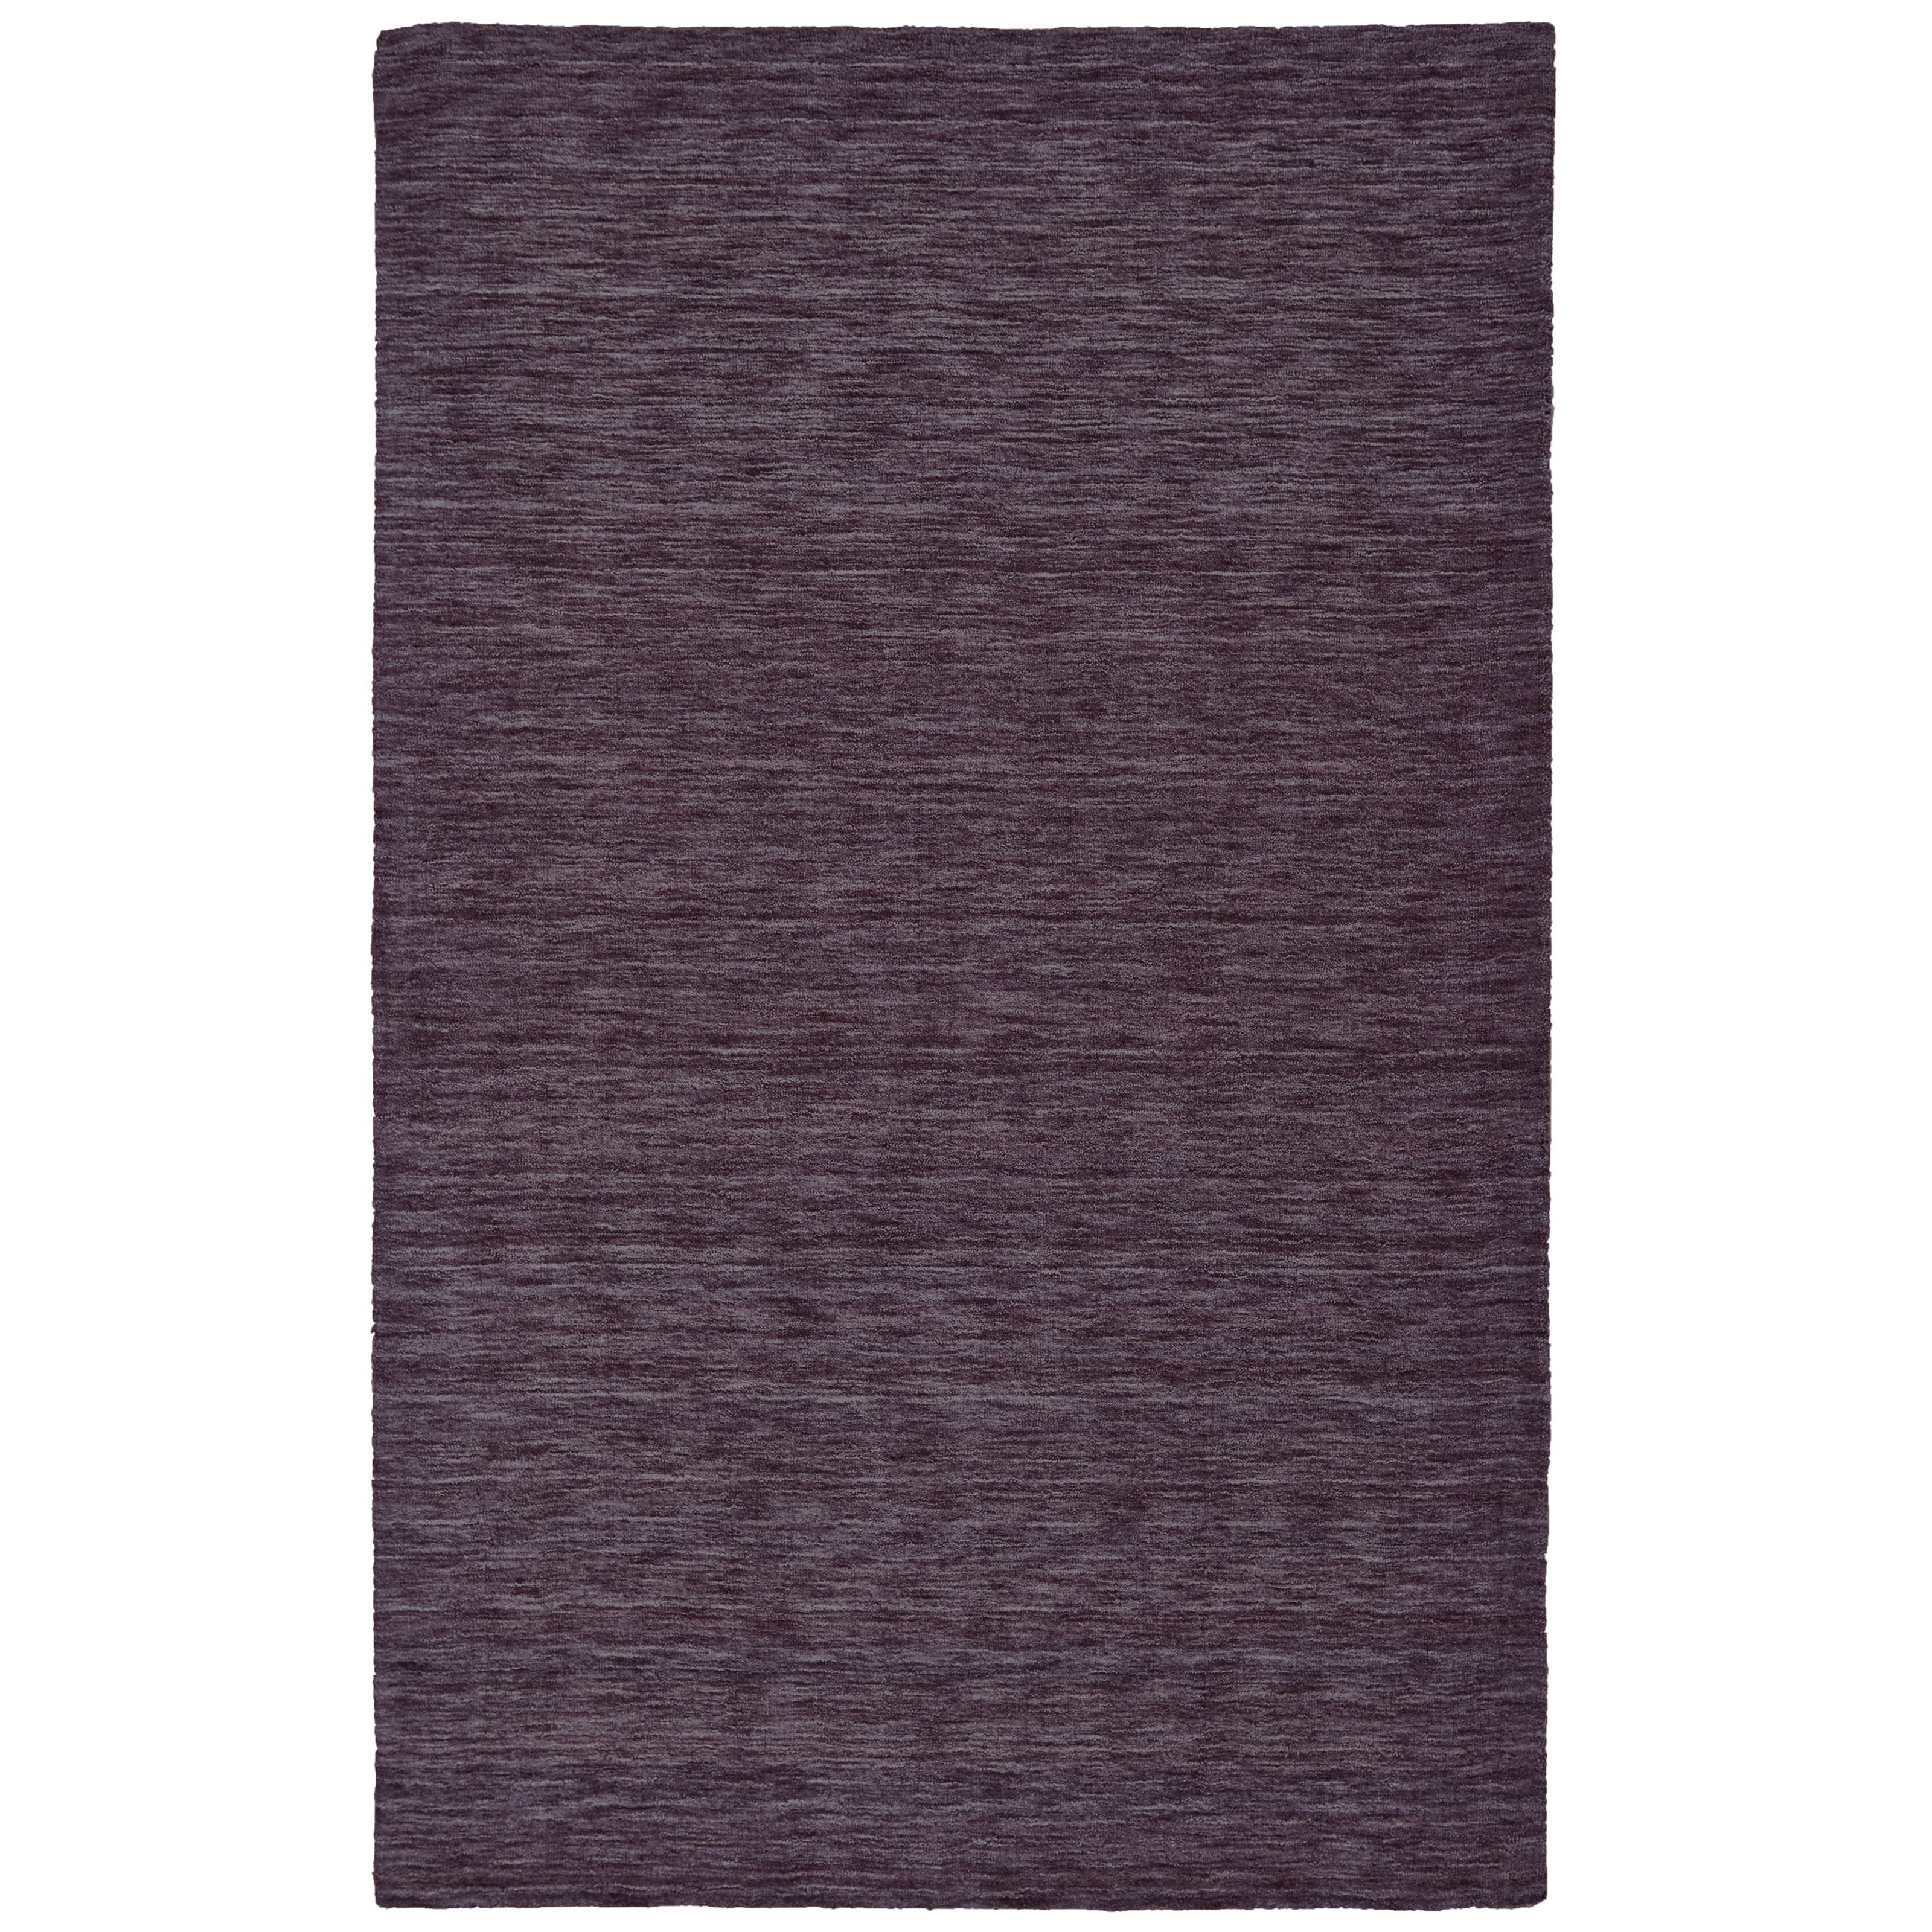 "Luna Purple 9'-6"" x 13'-6"" Area Rug by Feizy Rugs at Sprintz Furniture"